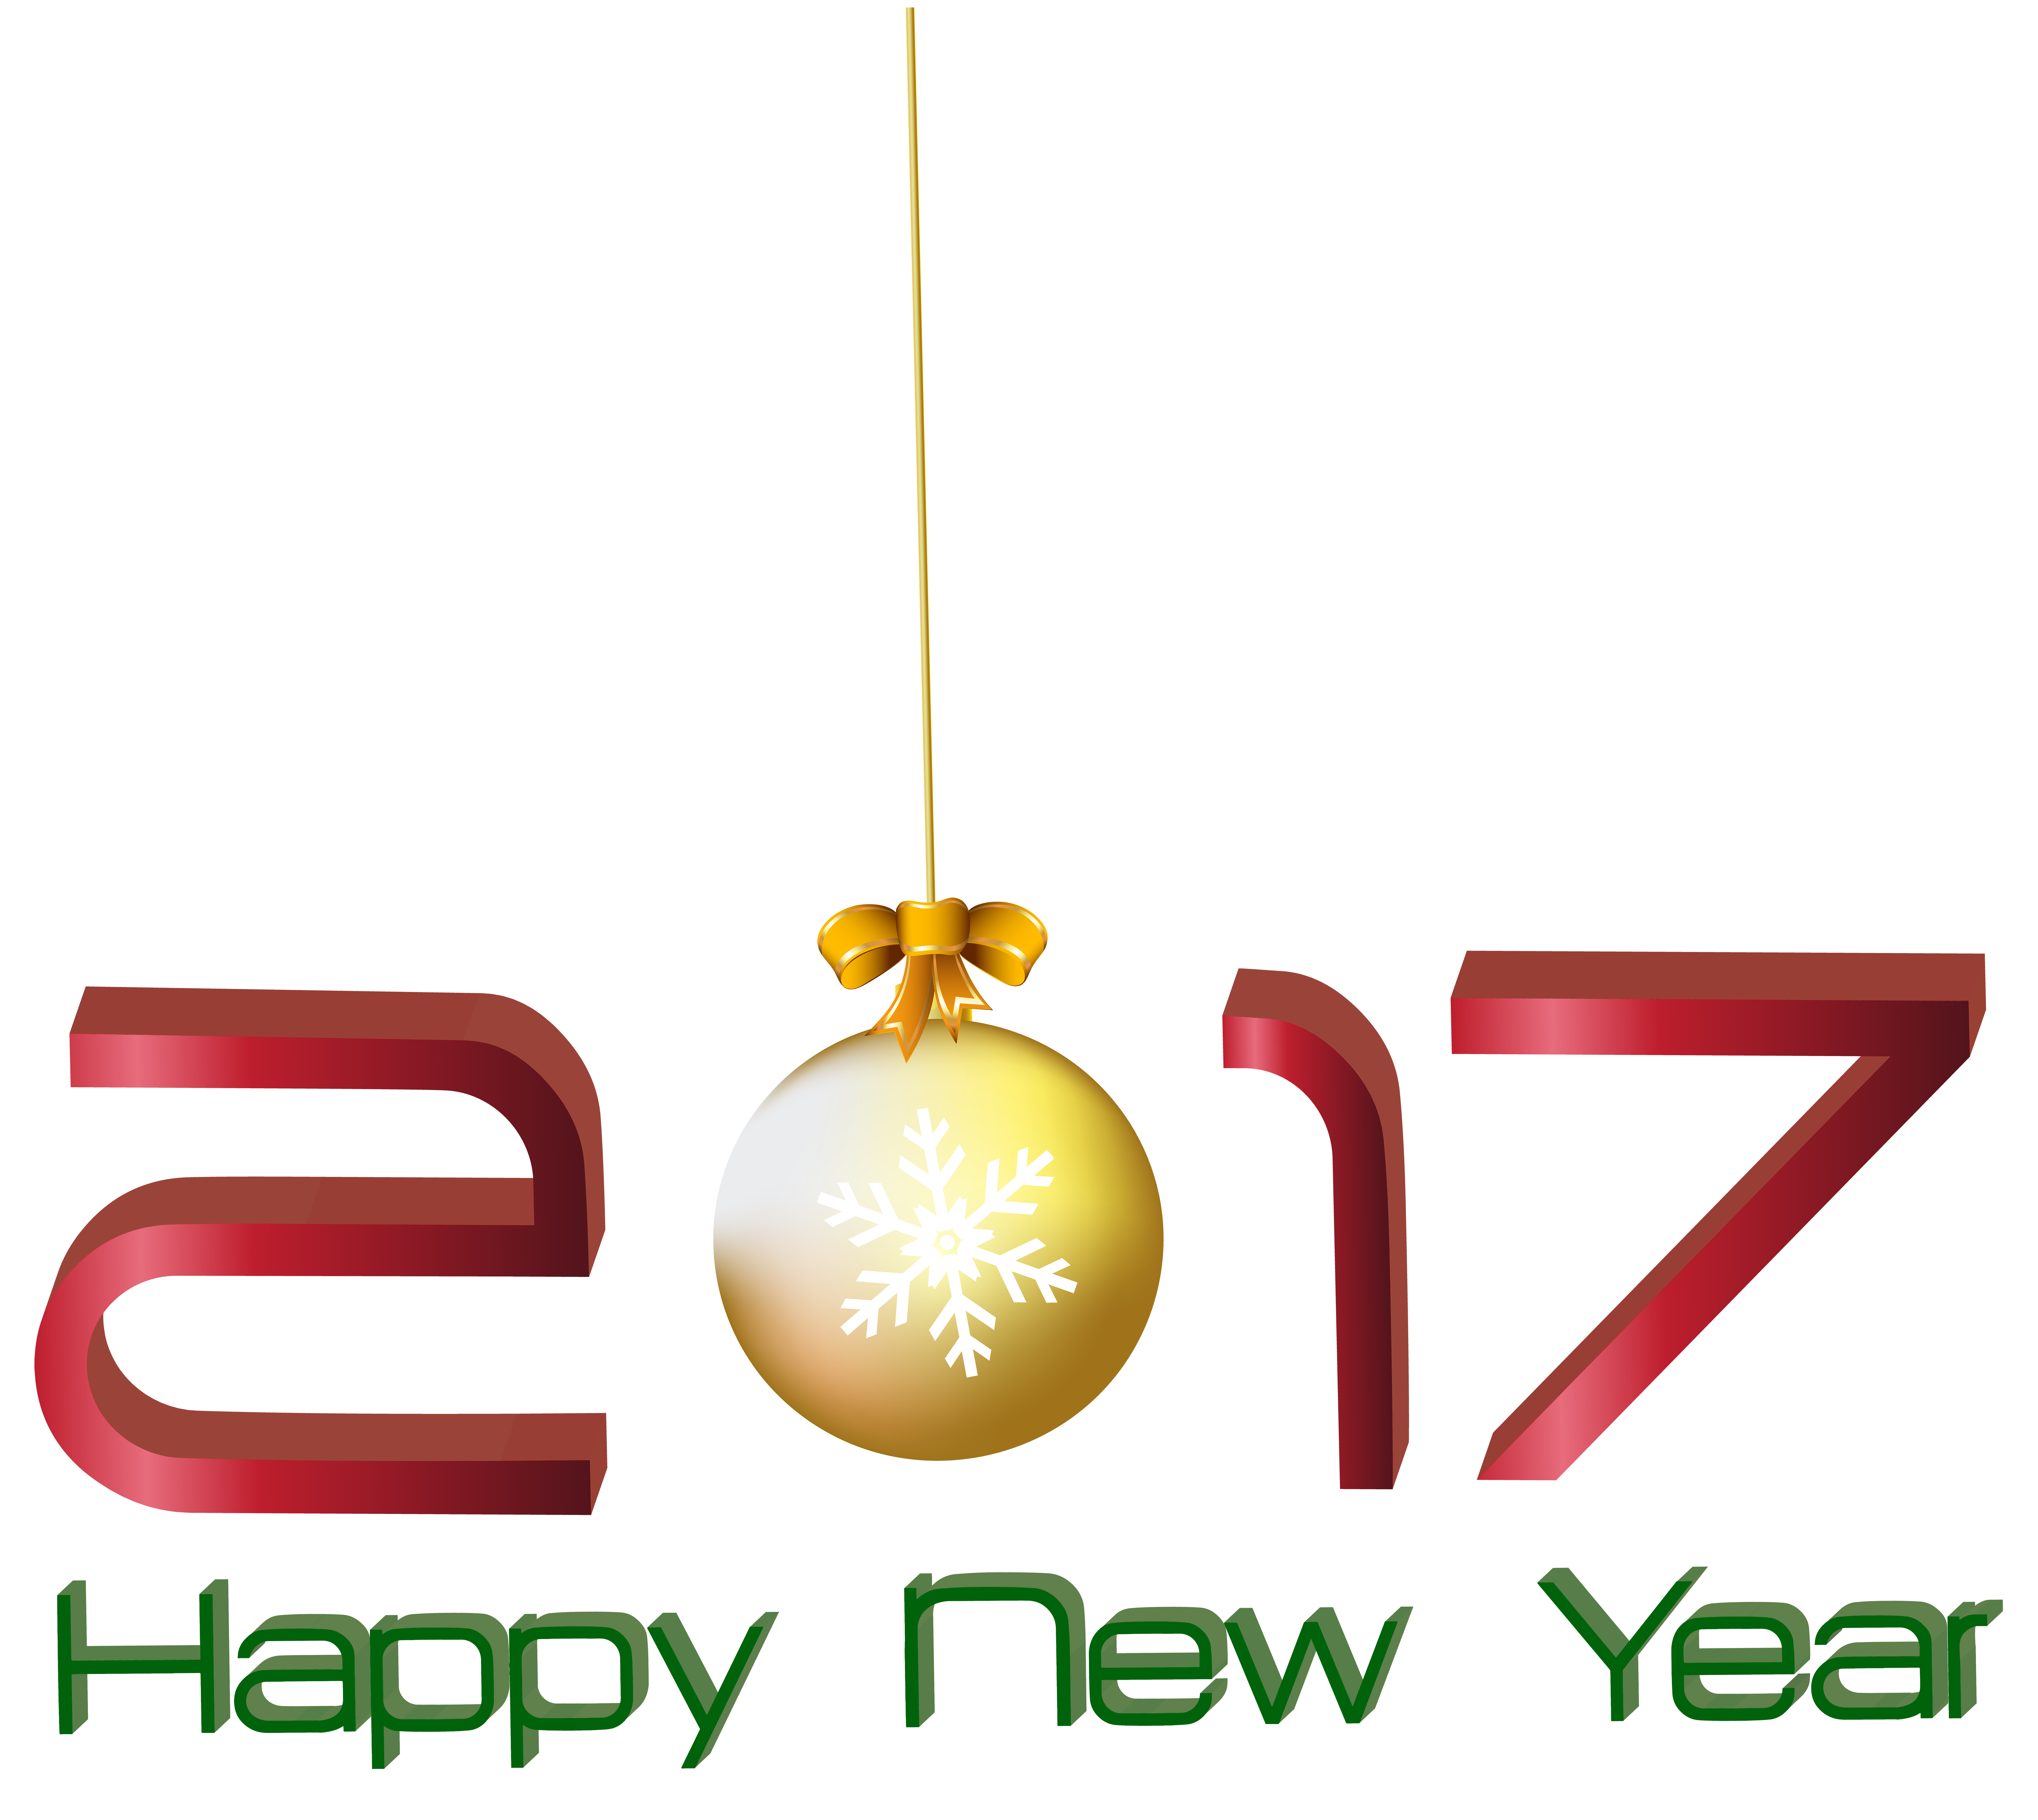 2017 clipart happy.  new year transparent